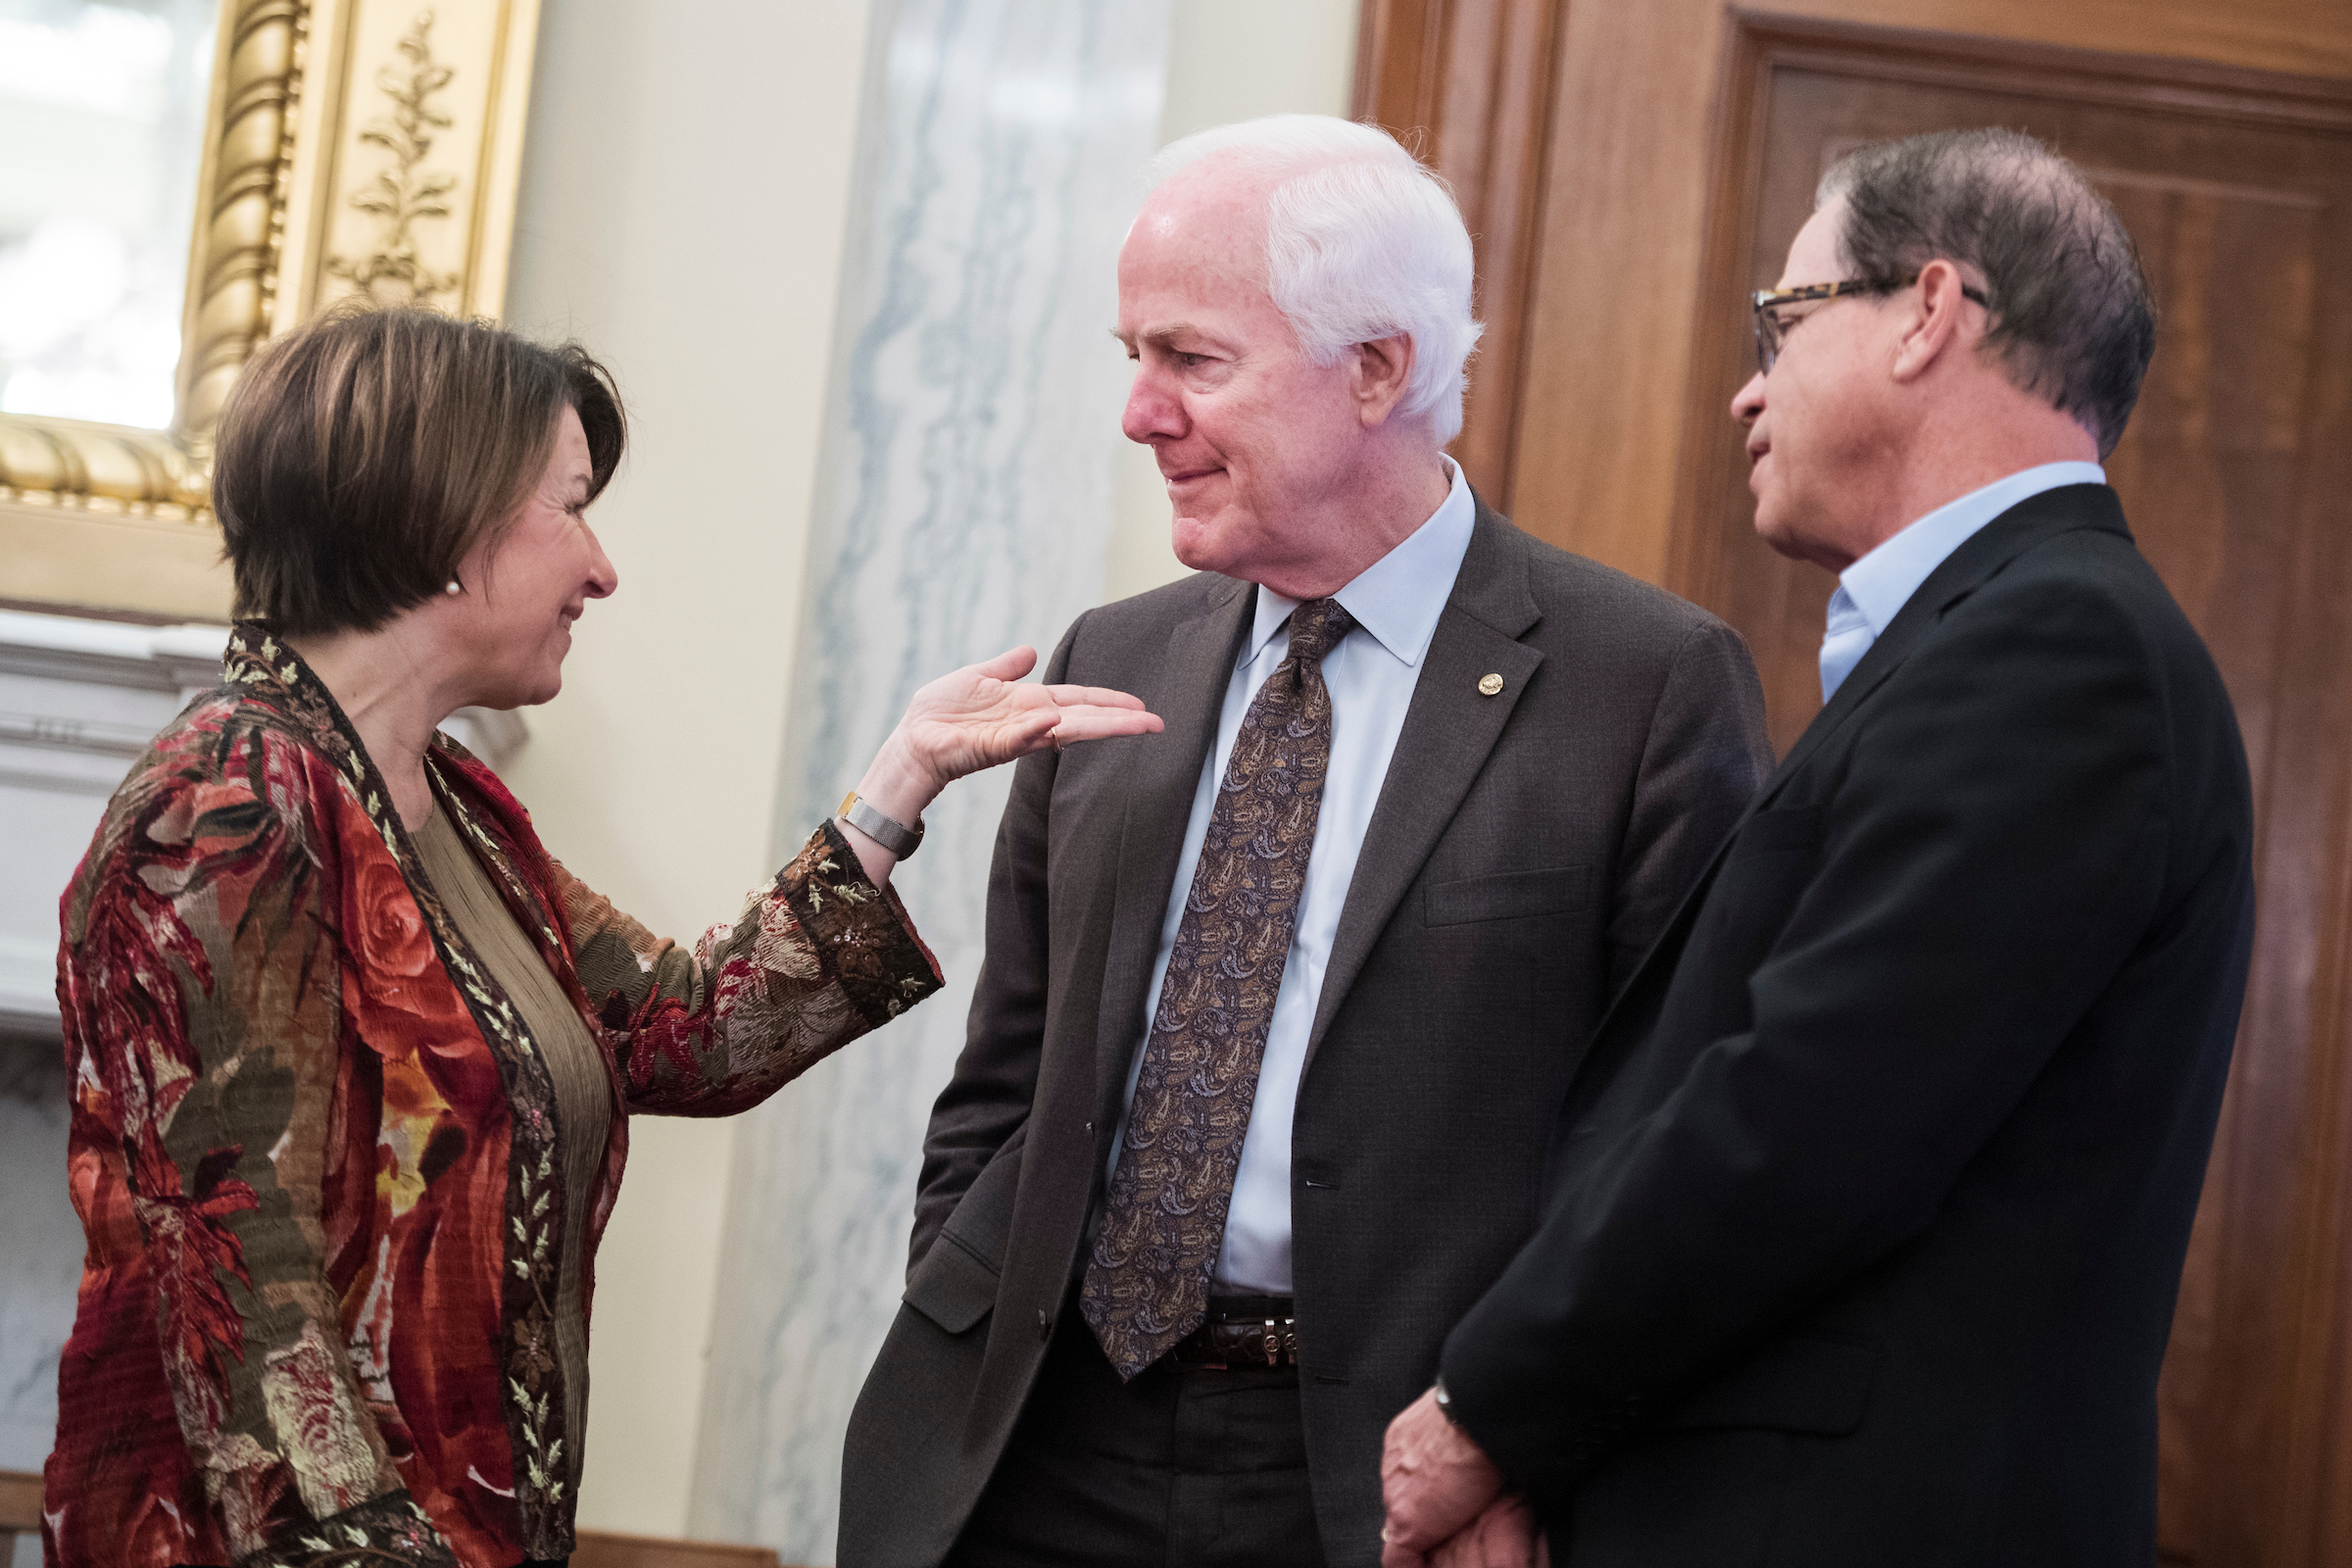 UNITED STATES - MARCH 13: From left, Sens. Amy Klobuchar, D-Minn., John Cornyn, R-Texas, and Mike Braun, R-Ind., attend a Senate Agriculture, Nutrition and Forestry Committee confirmation hearing in Russell Building on Wednesday, March 13, 2019. Heath Tarbert, nominee to be chairman of the Commodity Futures Trading Commission, testified. (Photo By Tom Williams/CQ Roll Call)